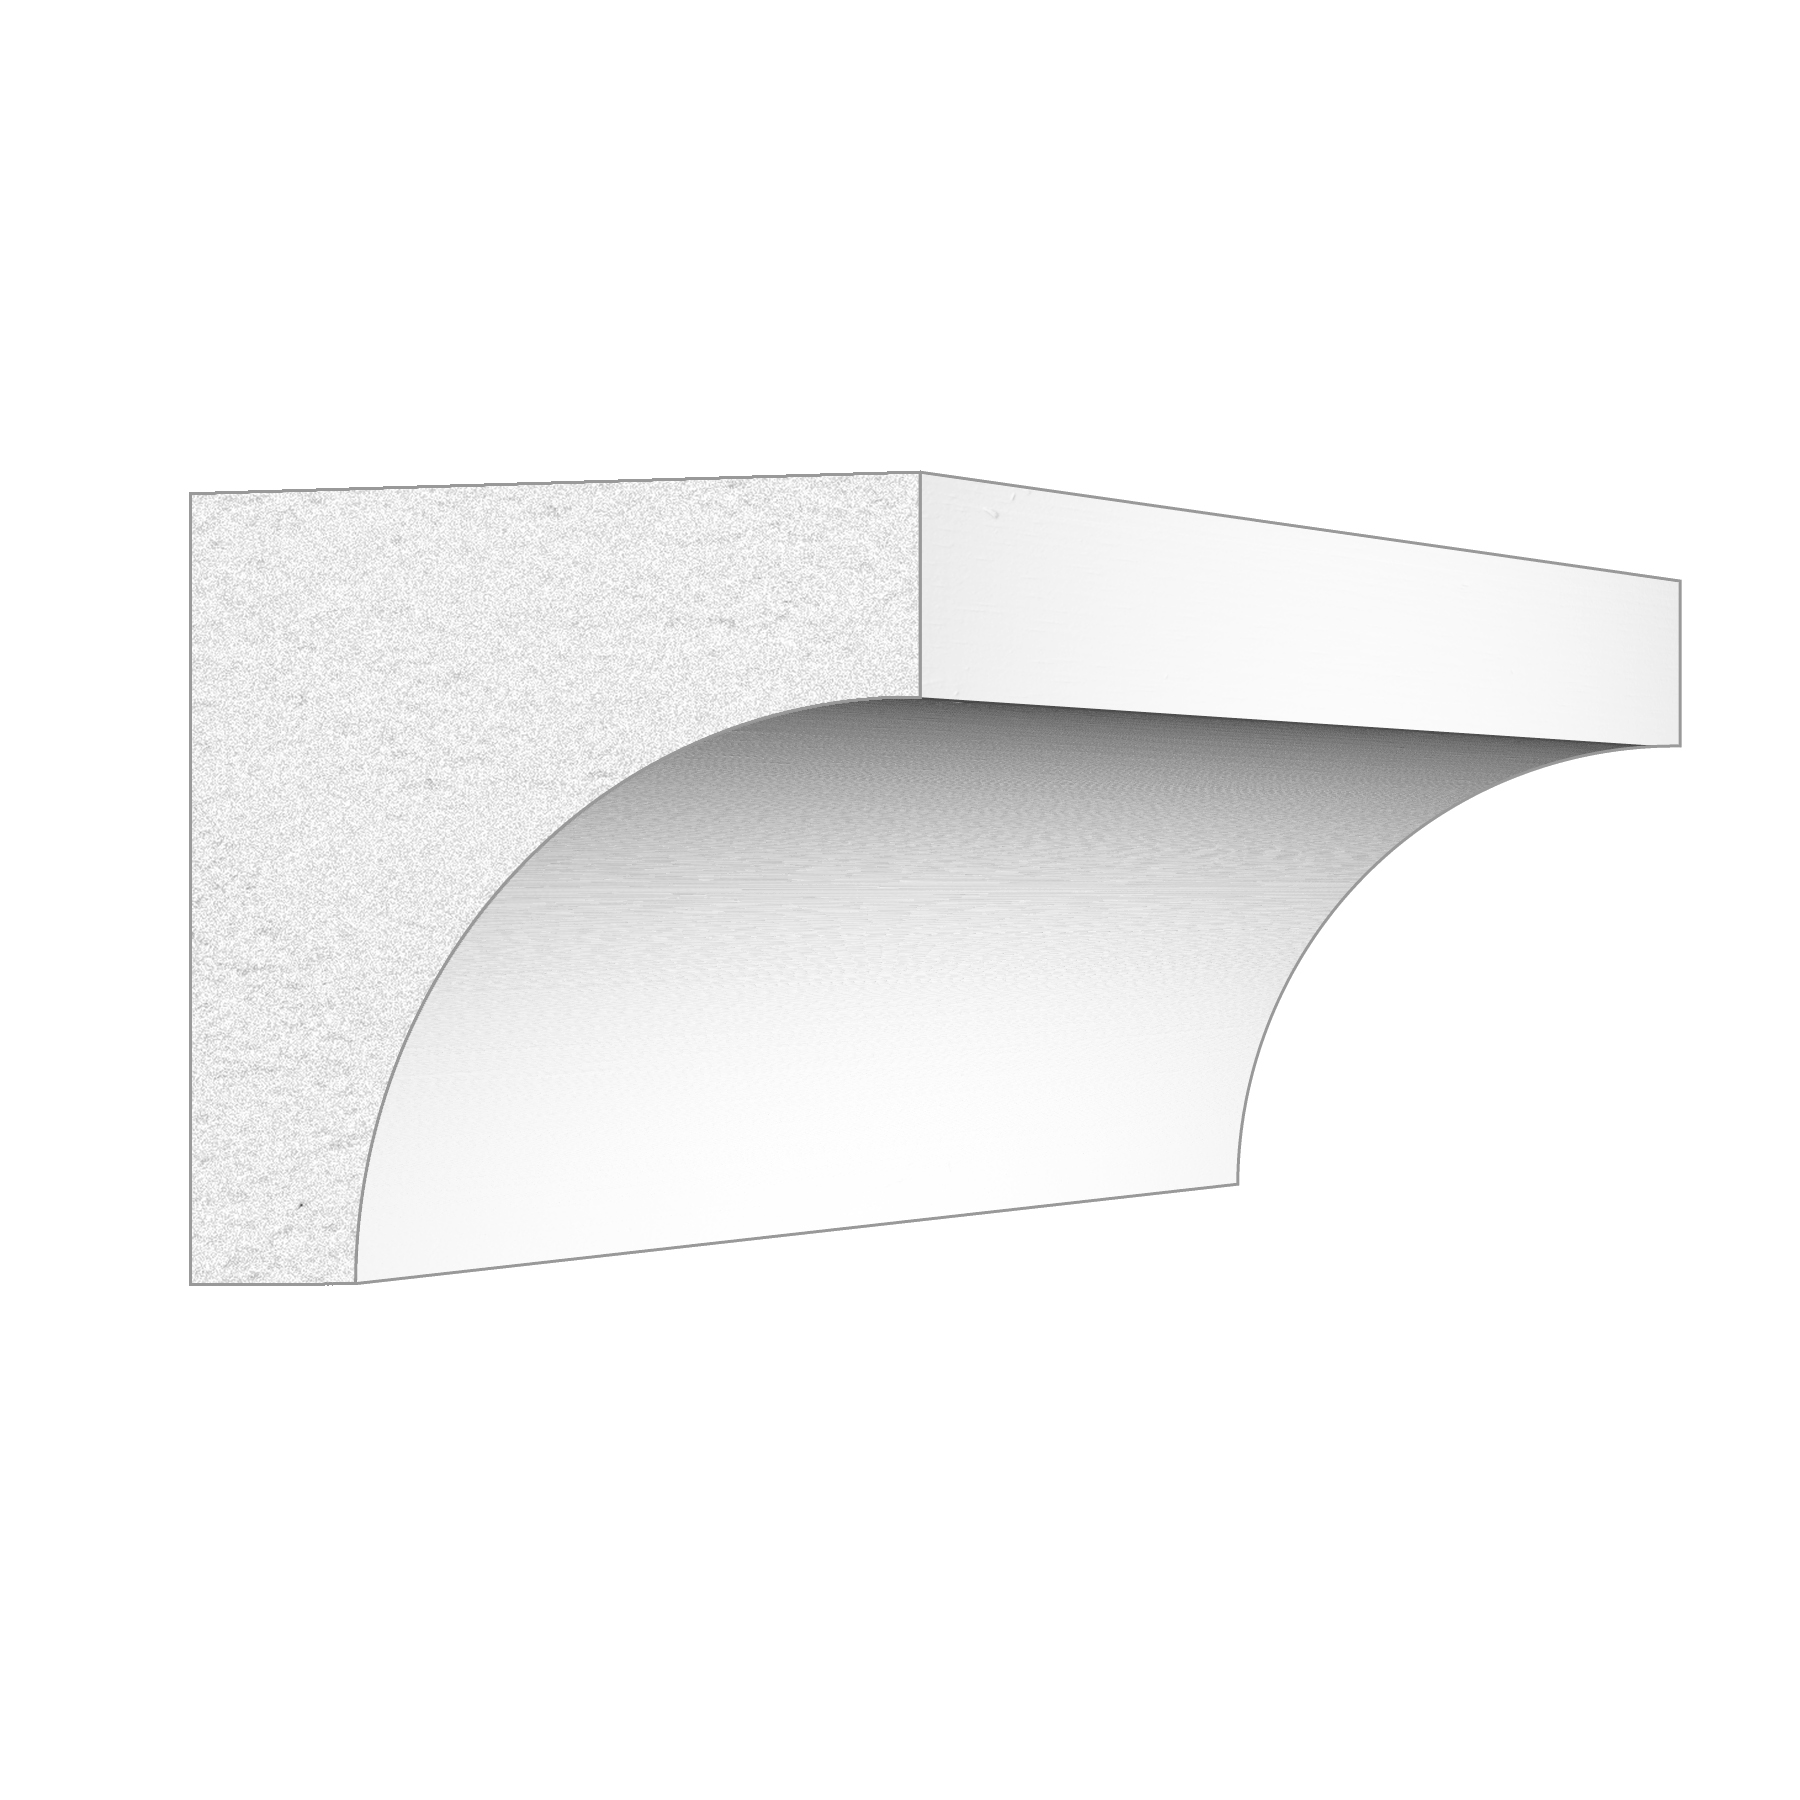 PALIGHT WHITE PVC SCOTIA COVE MOULDING